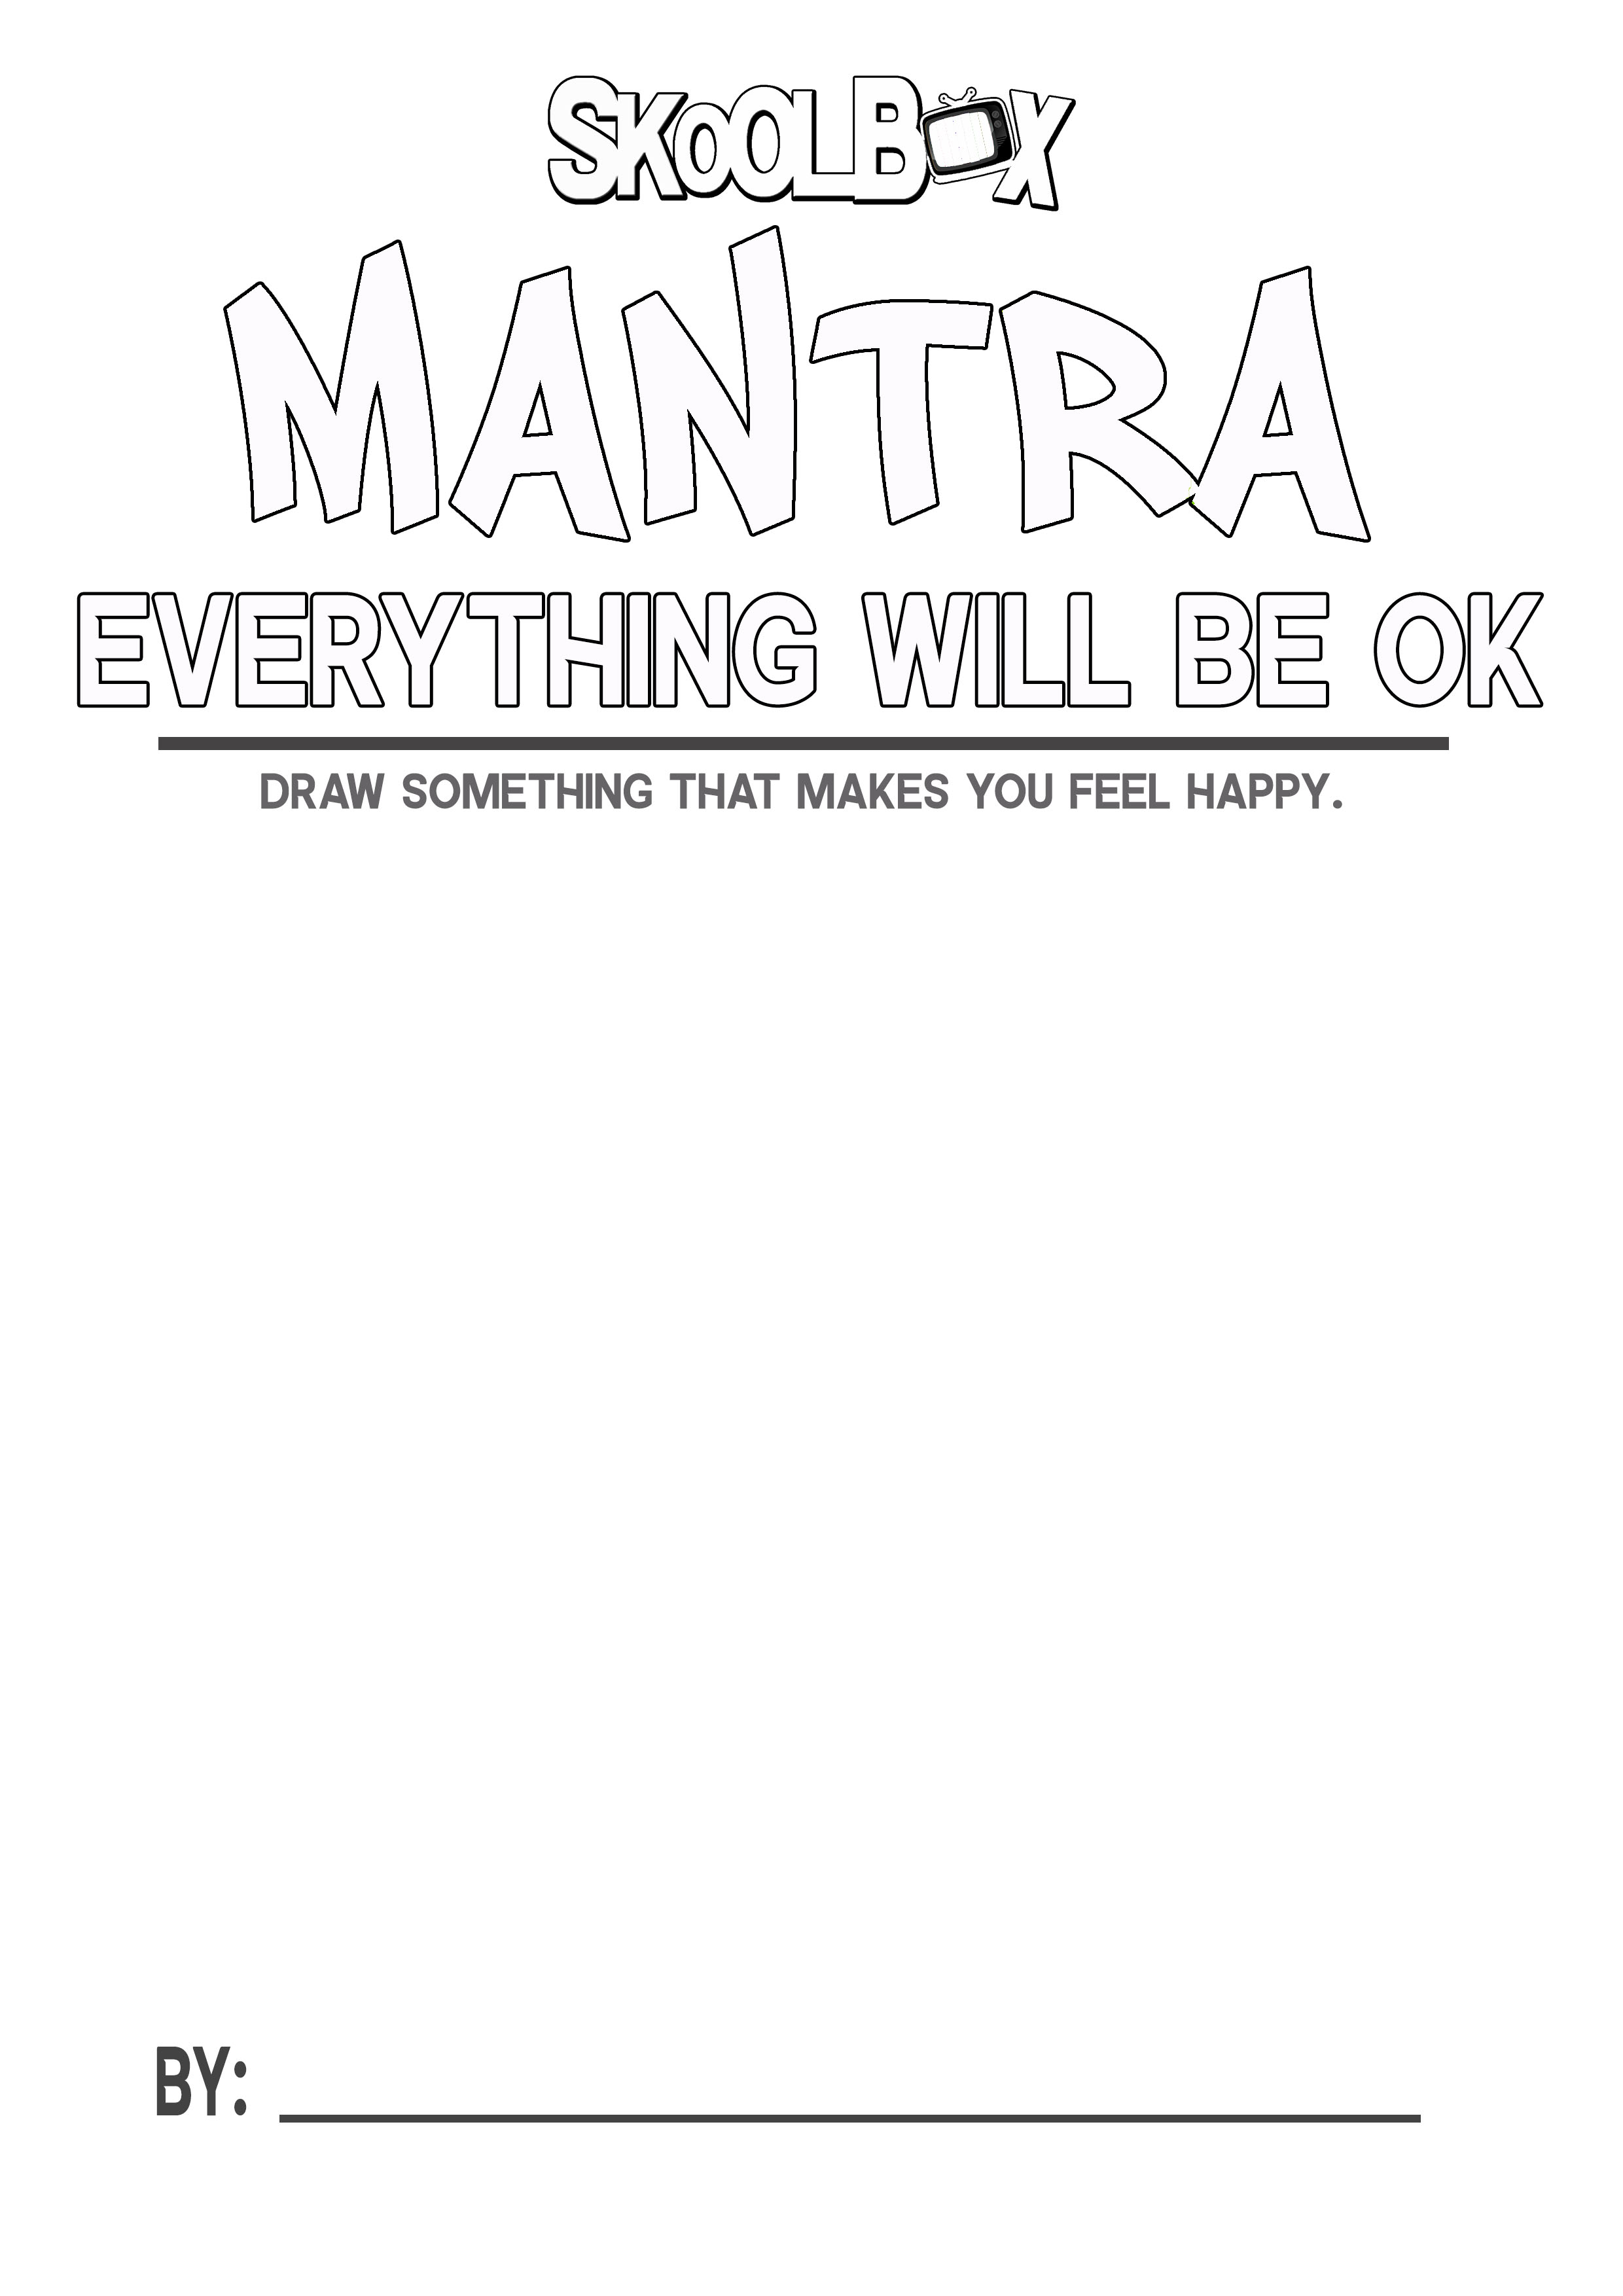 MANTRA 17 EVERYTHING WILL BE OK